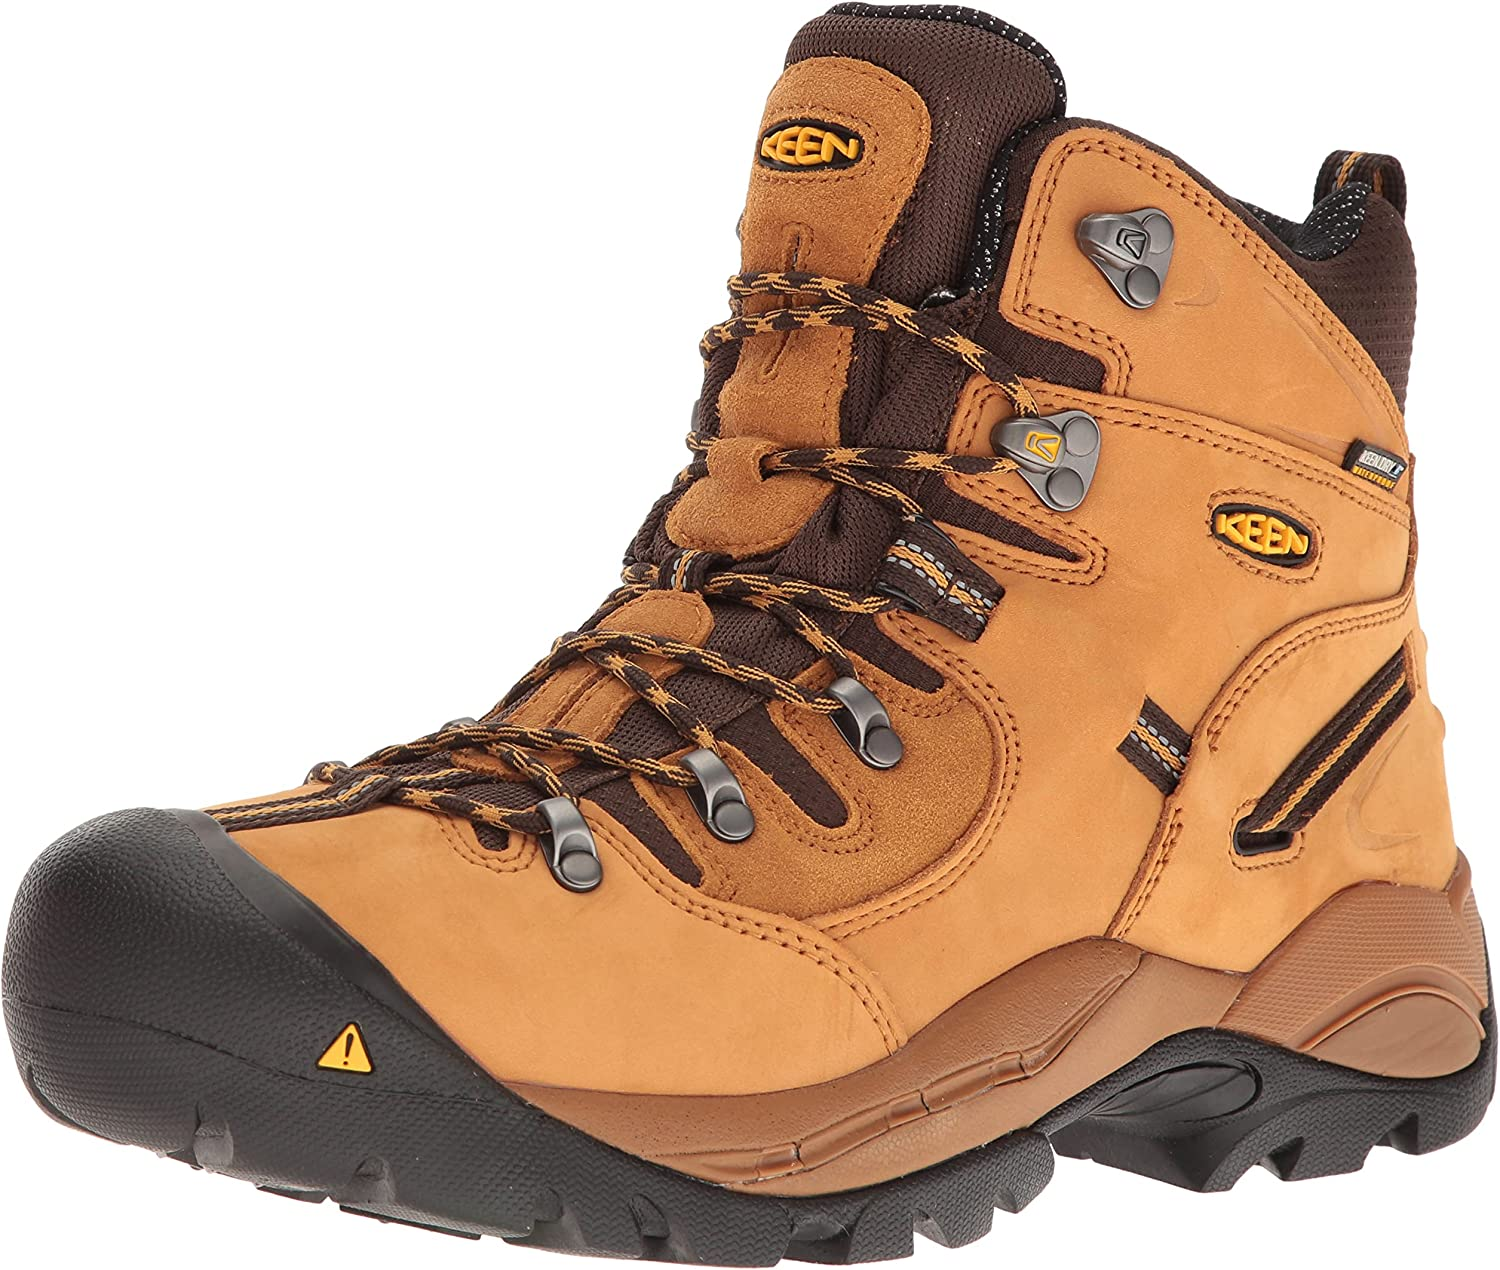 Keen Utility Men's Pittsburgh Industrial and Construction schuhe, Wheat, 8.5 D US